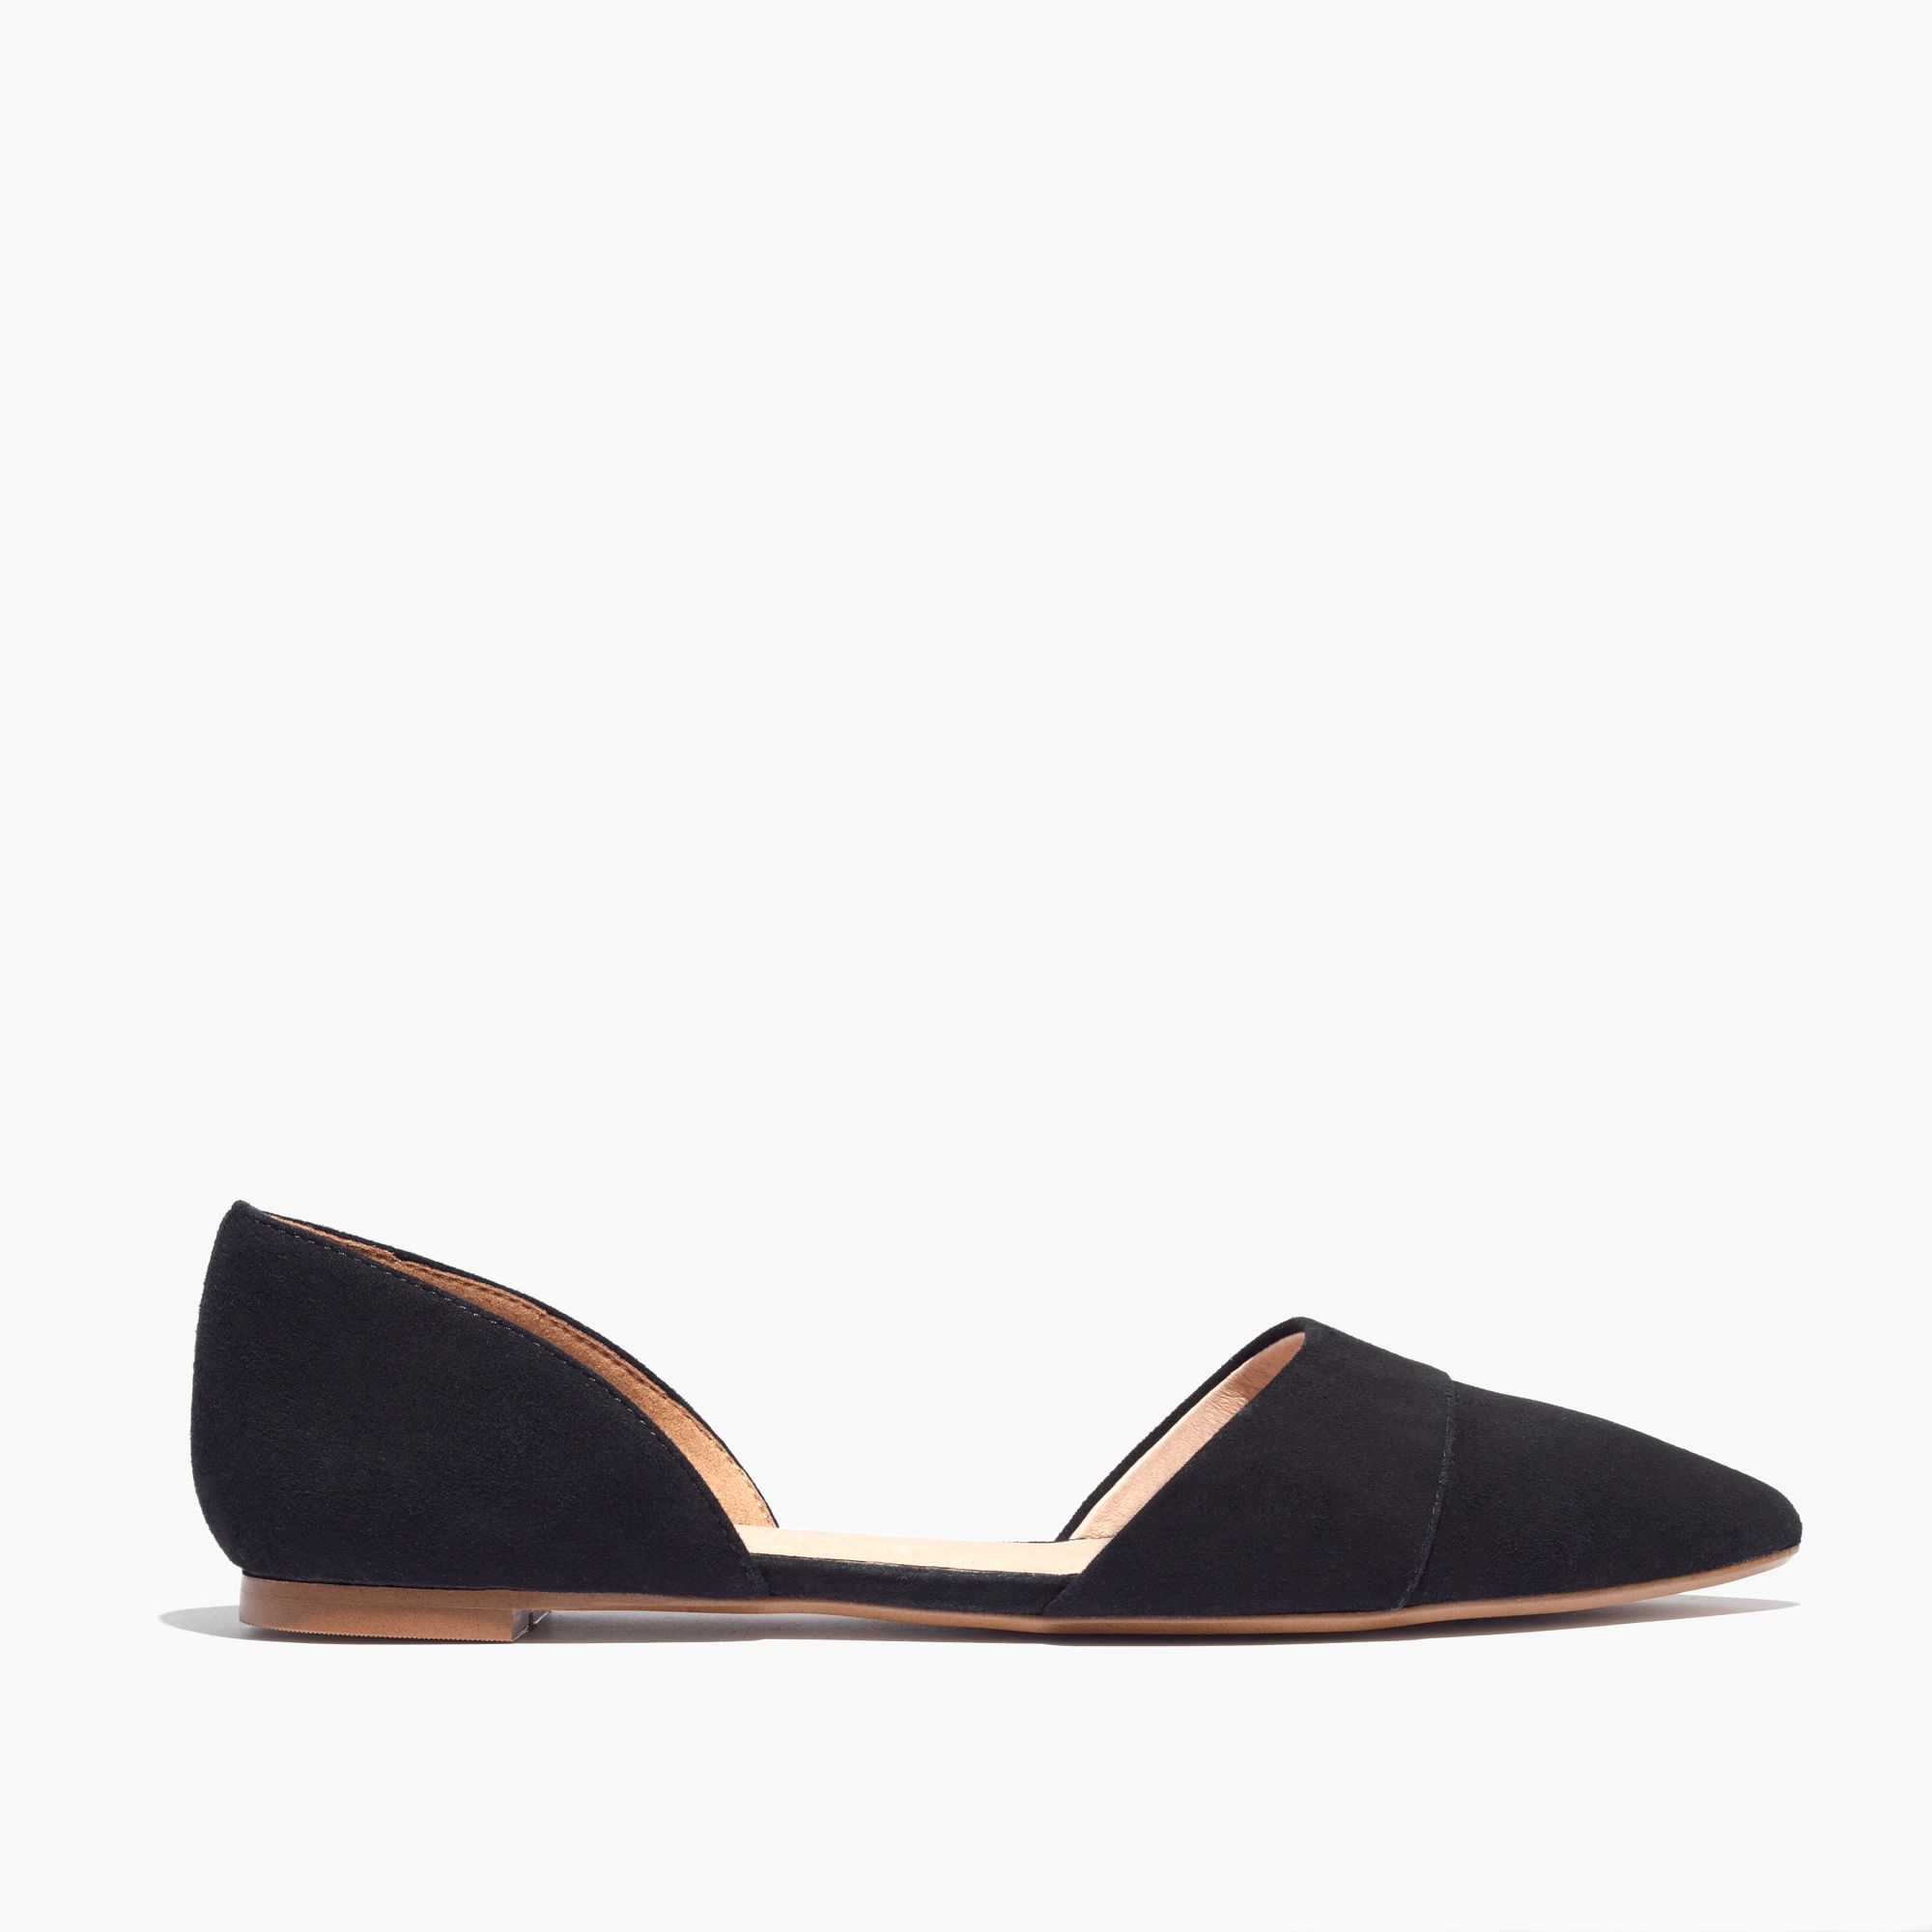 Madewell The D Orsay Flat In Suede In Black Lyst